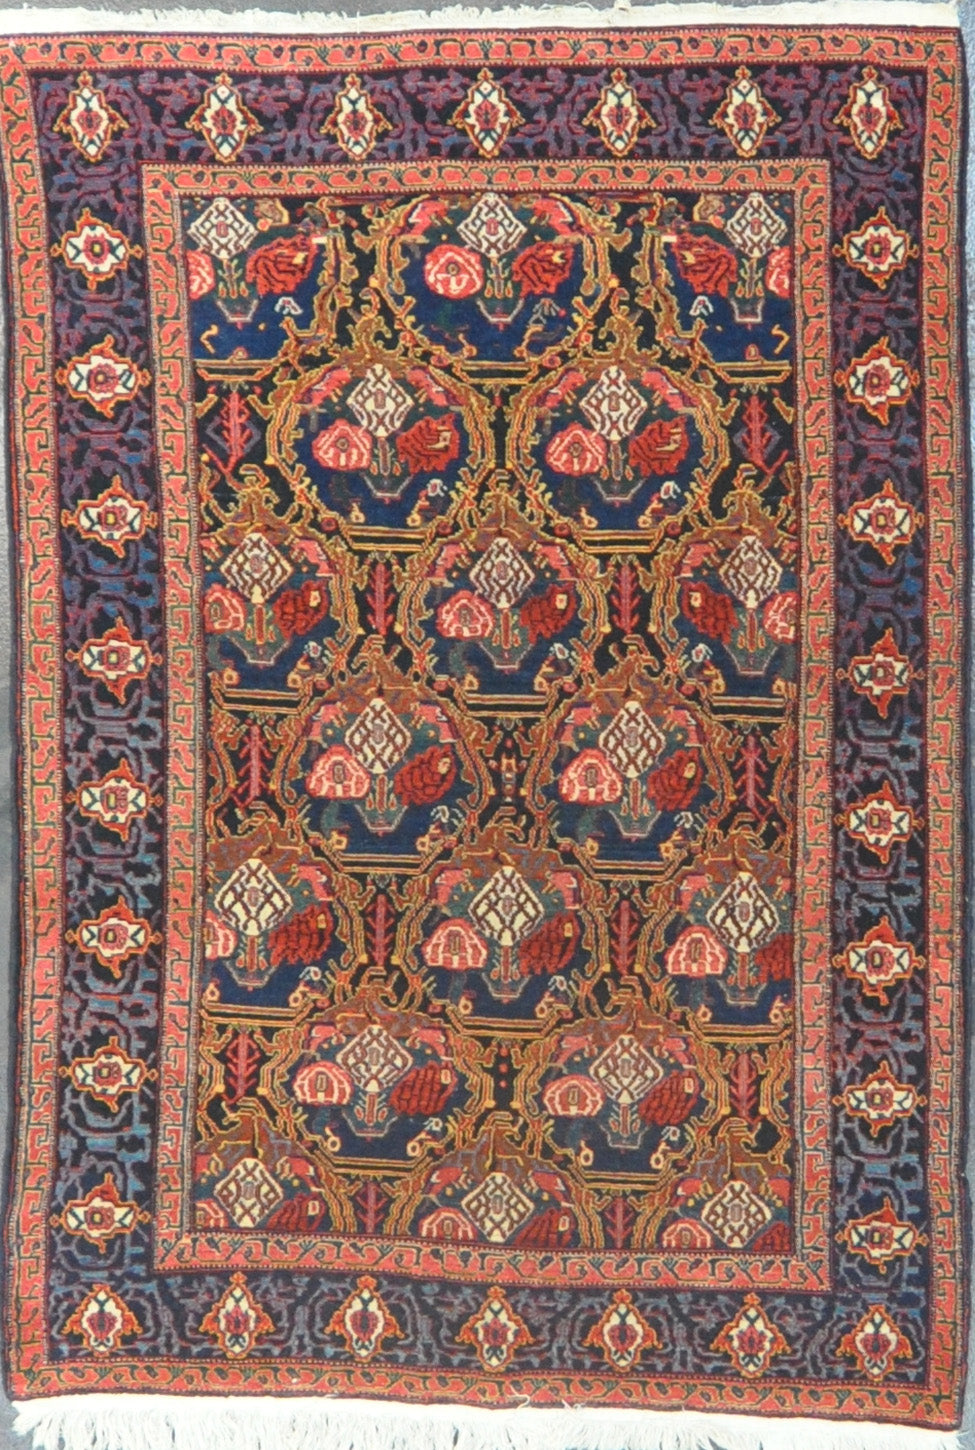 Rug Id: 2919 Antique Persian senneh 4.4x6.7